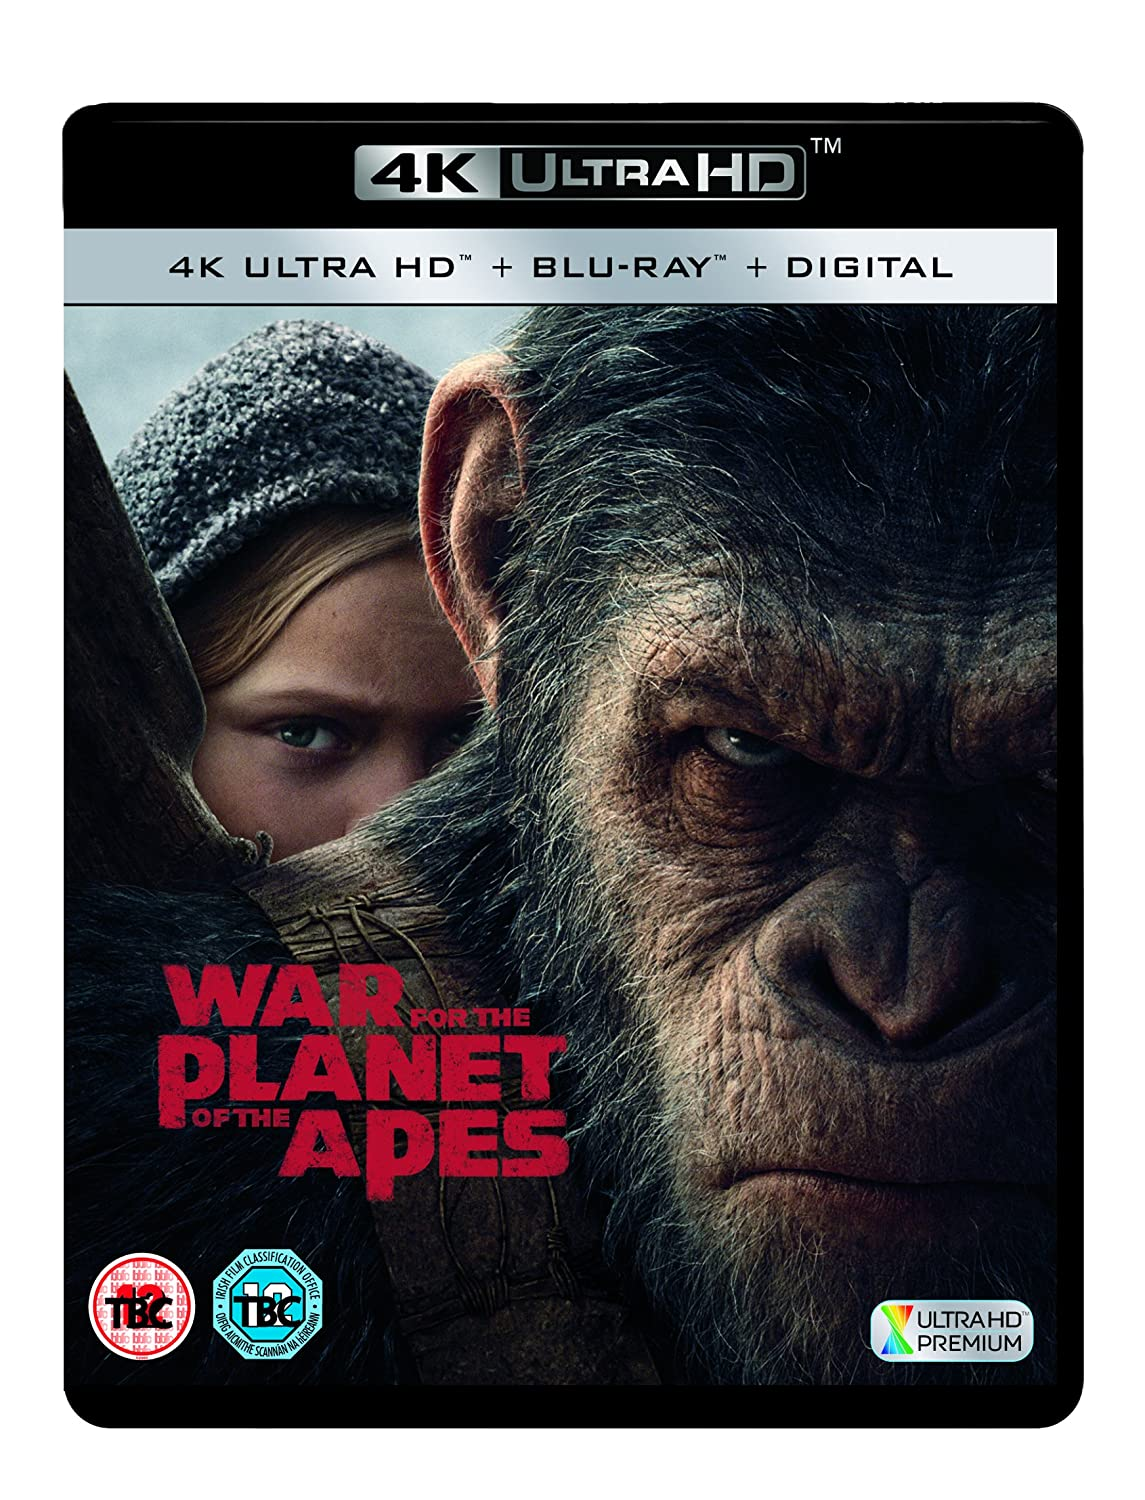 War for the Planet of the Apes 2017 Full Movie Free Download In HD